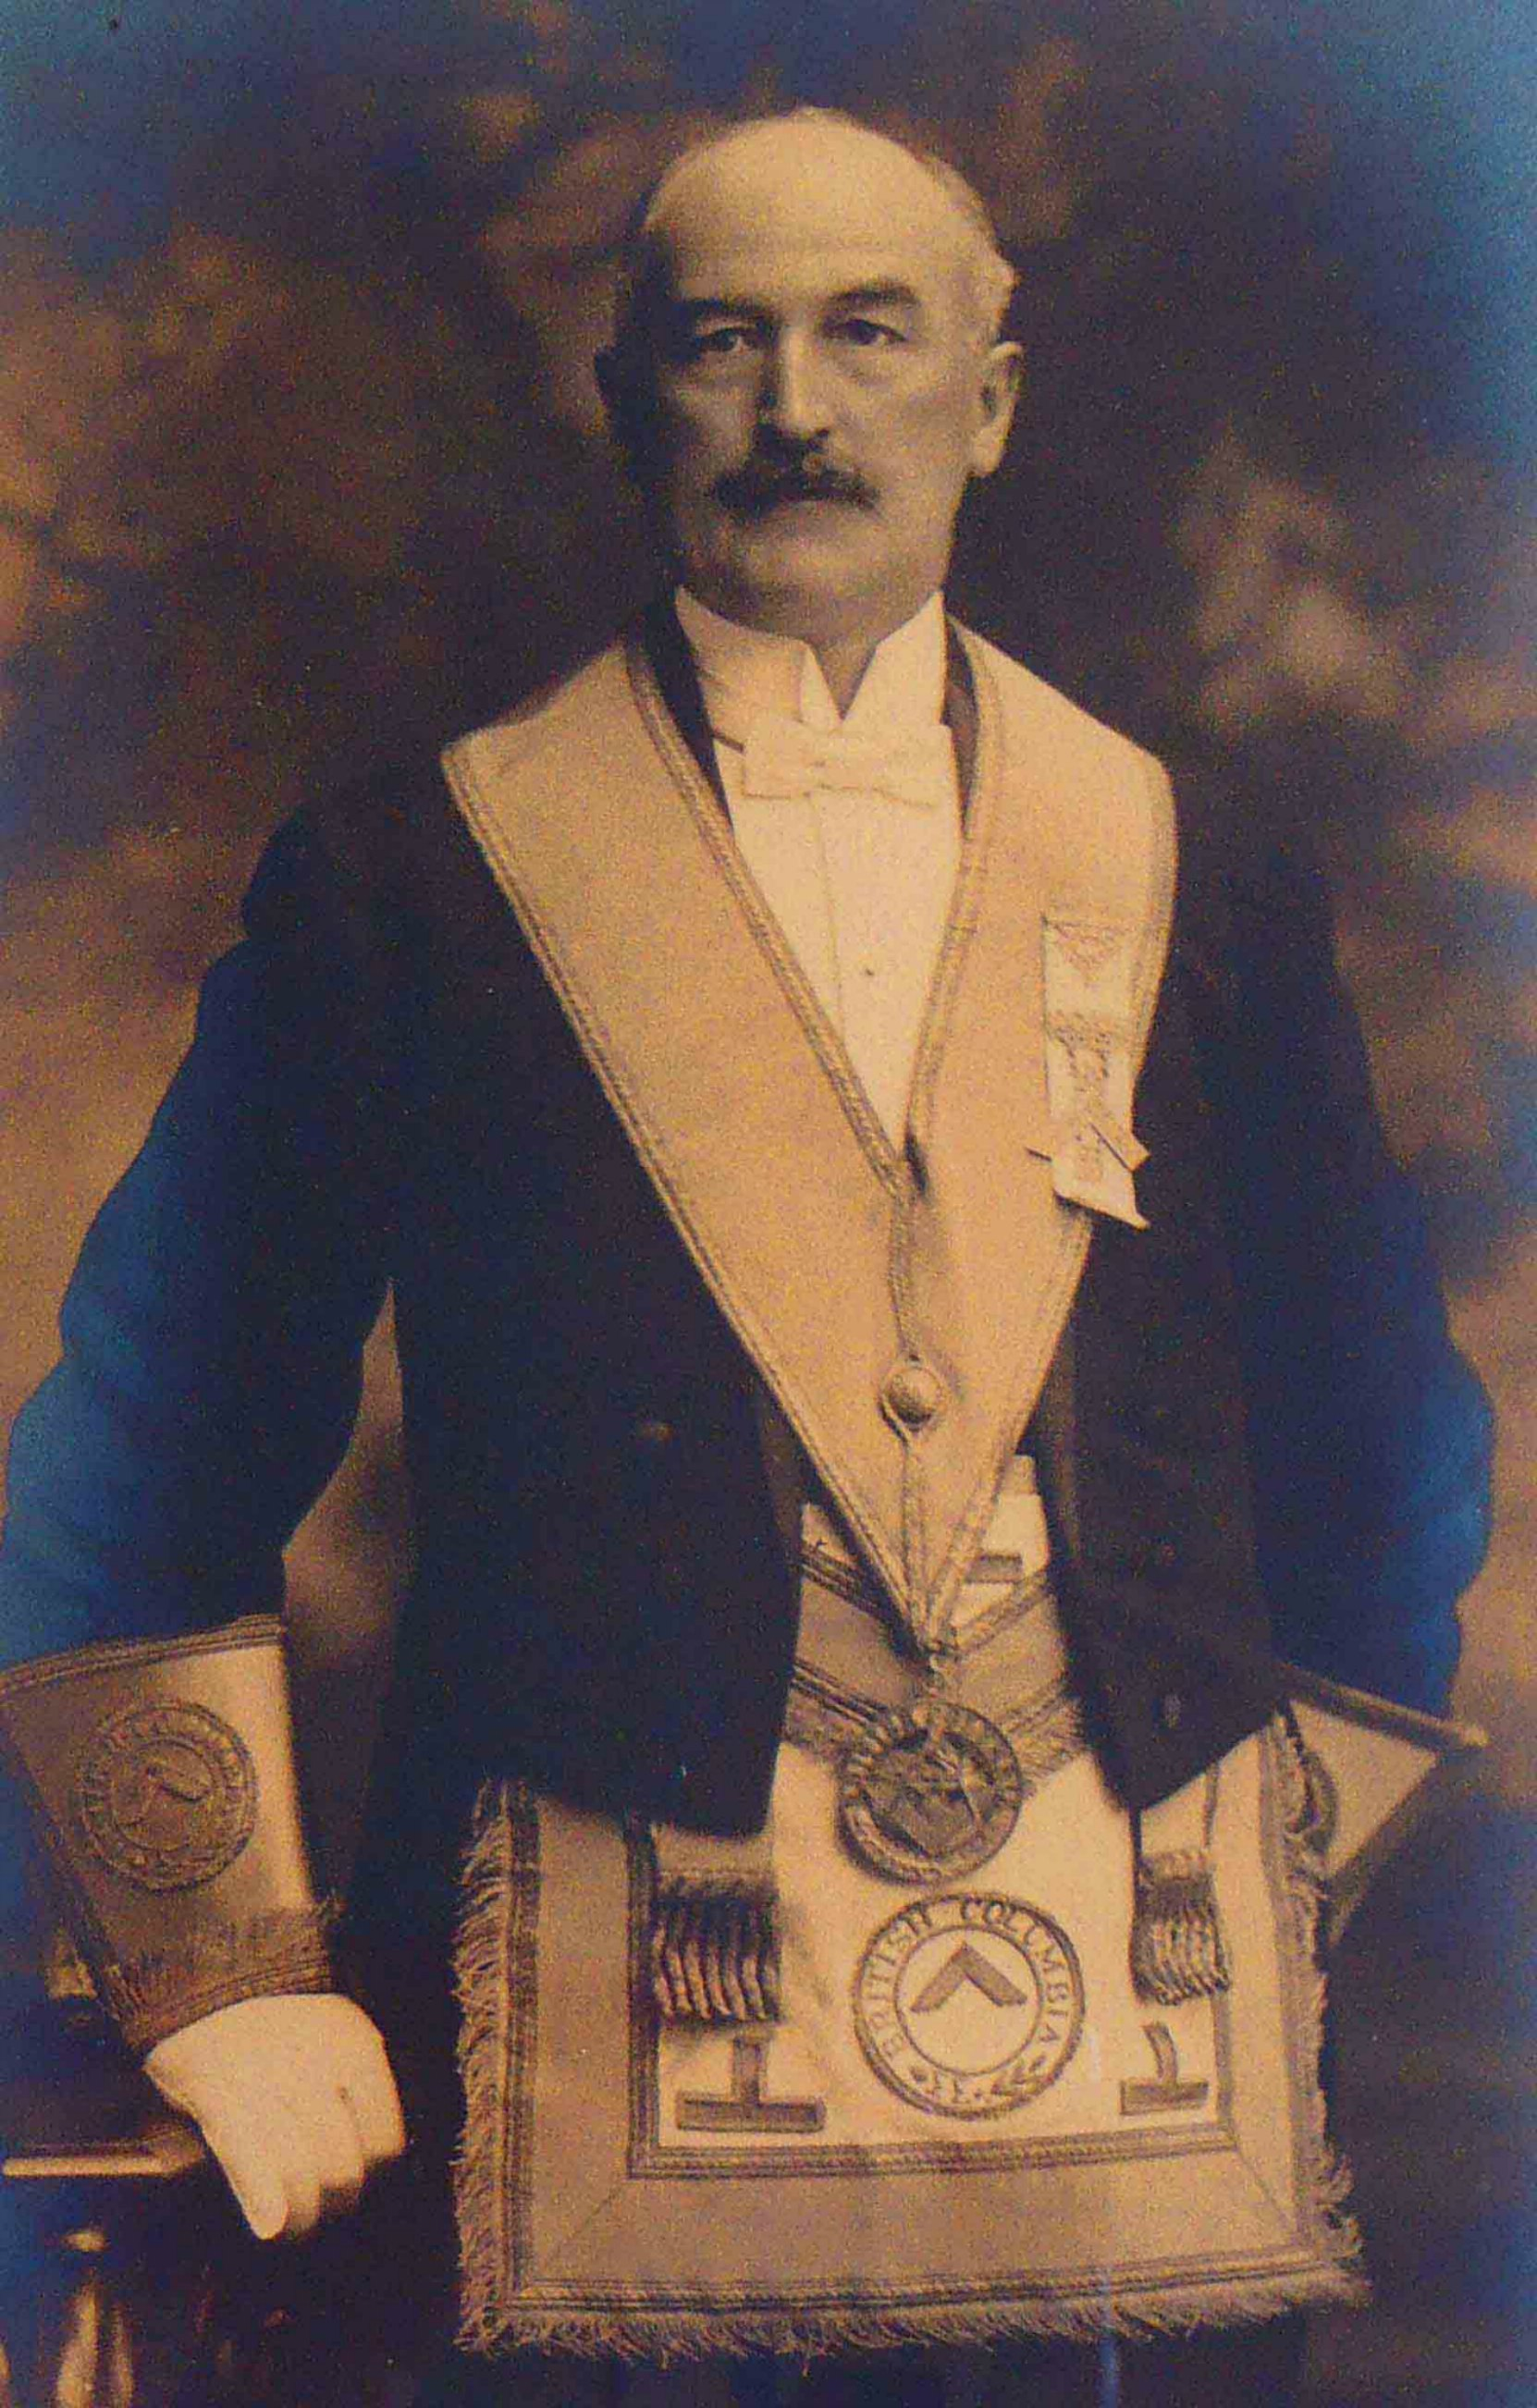 Thomas Pitt in Masonic regalia, circa 1918 (Photo courtesy of Temple Lodge, No.33 A.F.&A.M.)